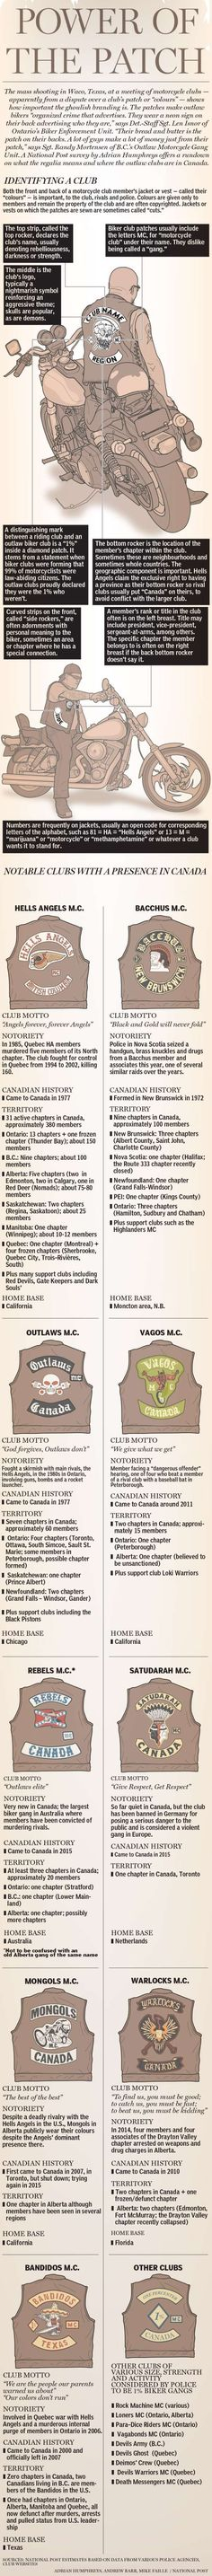 Hells Angels under pressure as outlaw motorcycle clubs from across the globe expand into Canada Outlaws Motorcycle Club, Motorcycle Wedding, Tracker Motorcycle, Motorcycle Tattoos, Chopper Motorcycle, Motorcycle Quotes, Bike Quotes, Hells Angels, Biker Clubs